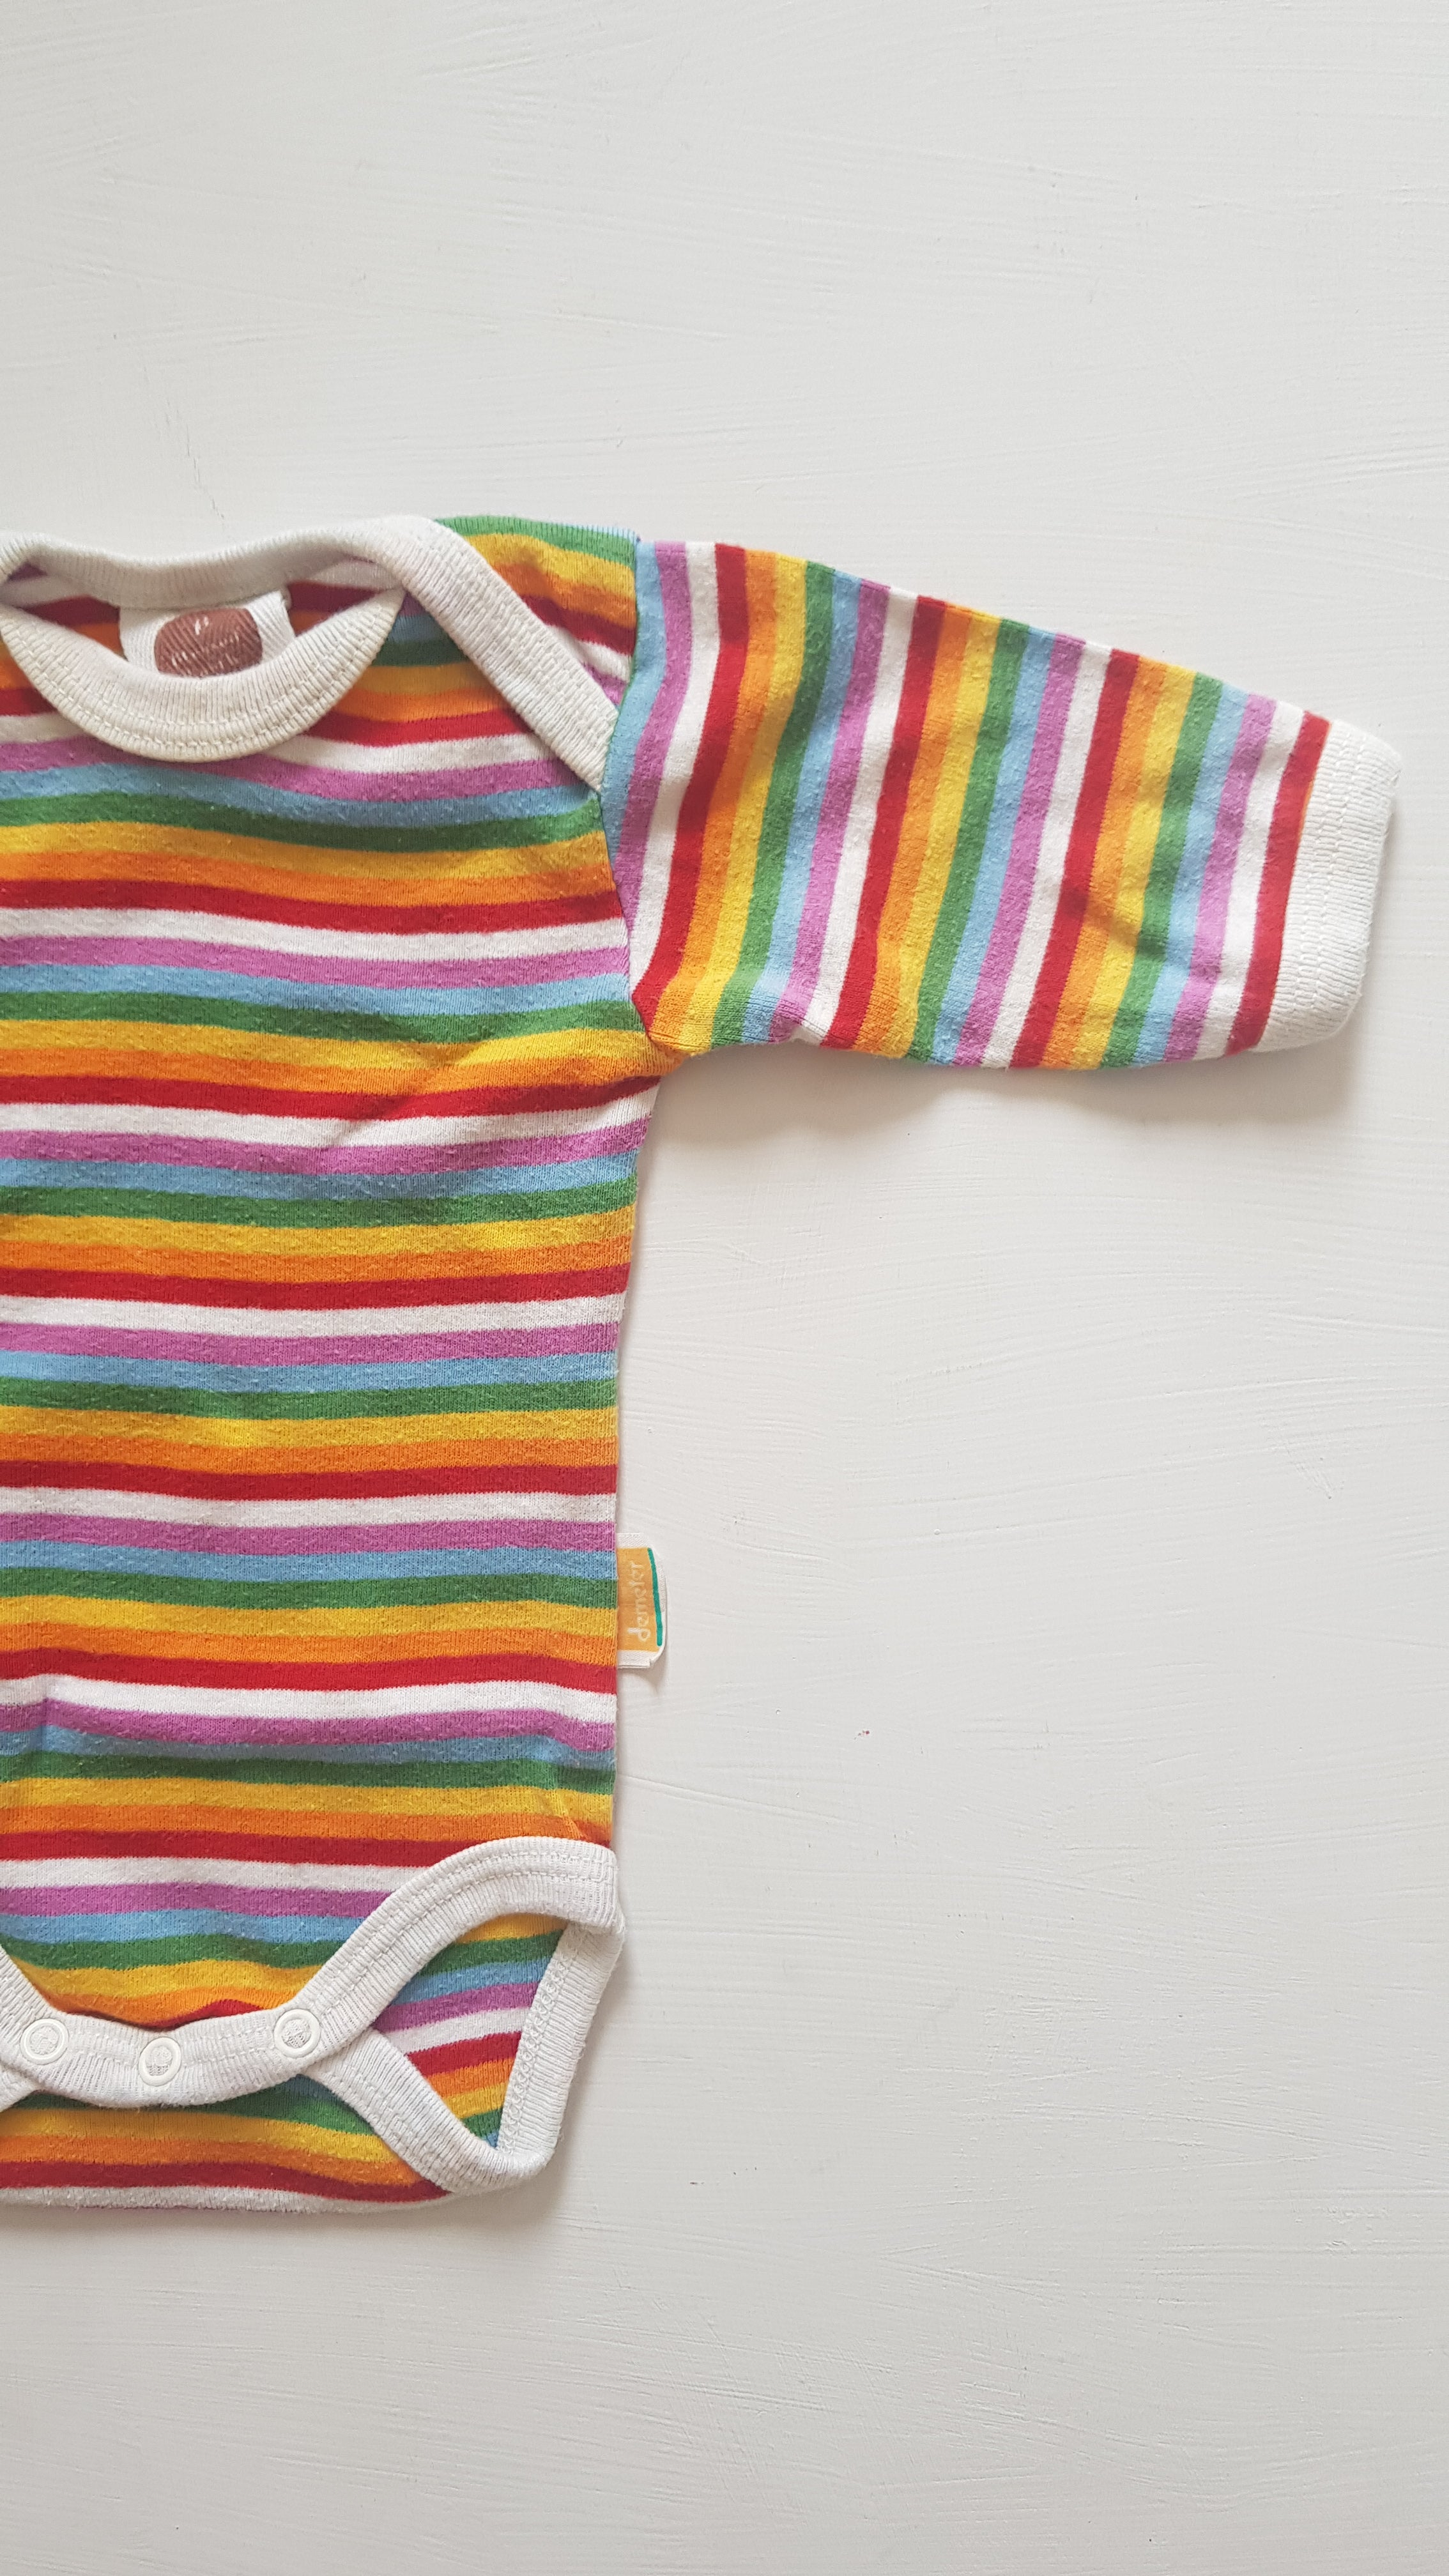 THRIFT Blessed Earth - Rainbow Stripe Romper Size 000